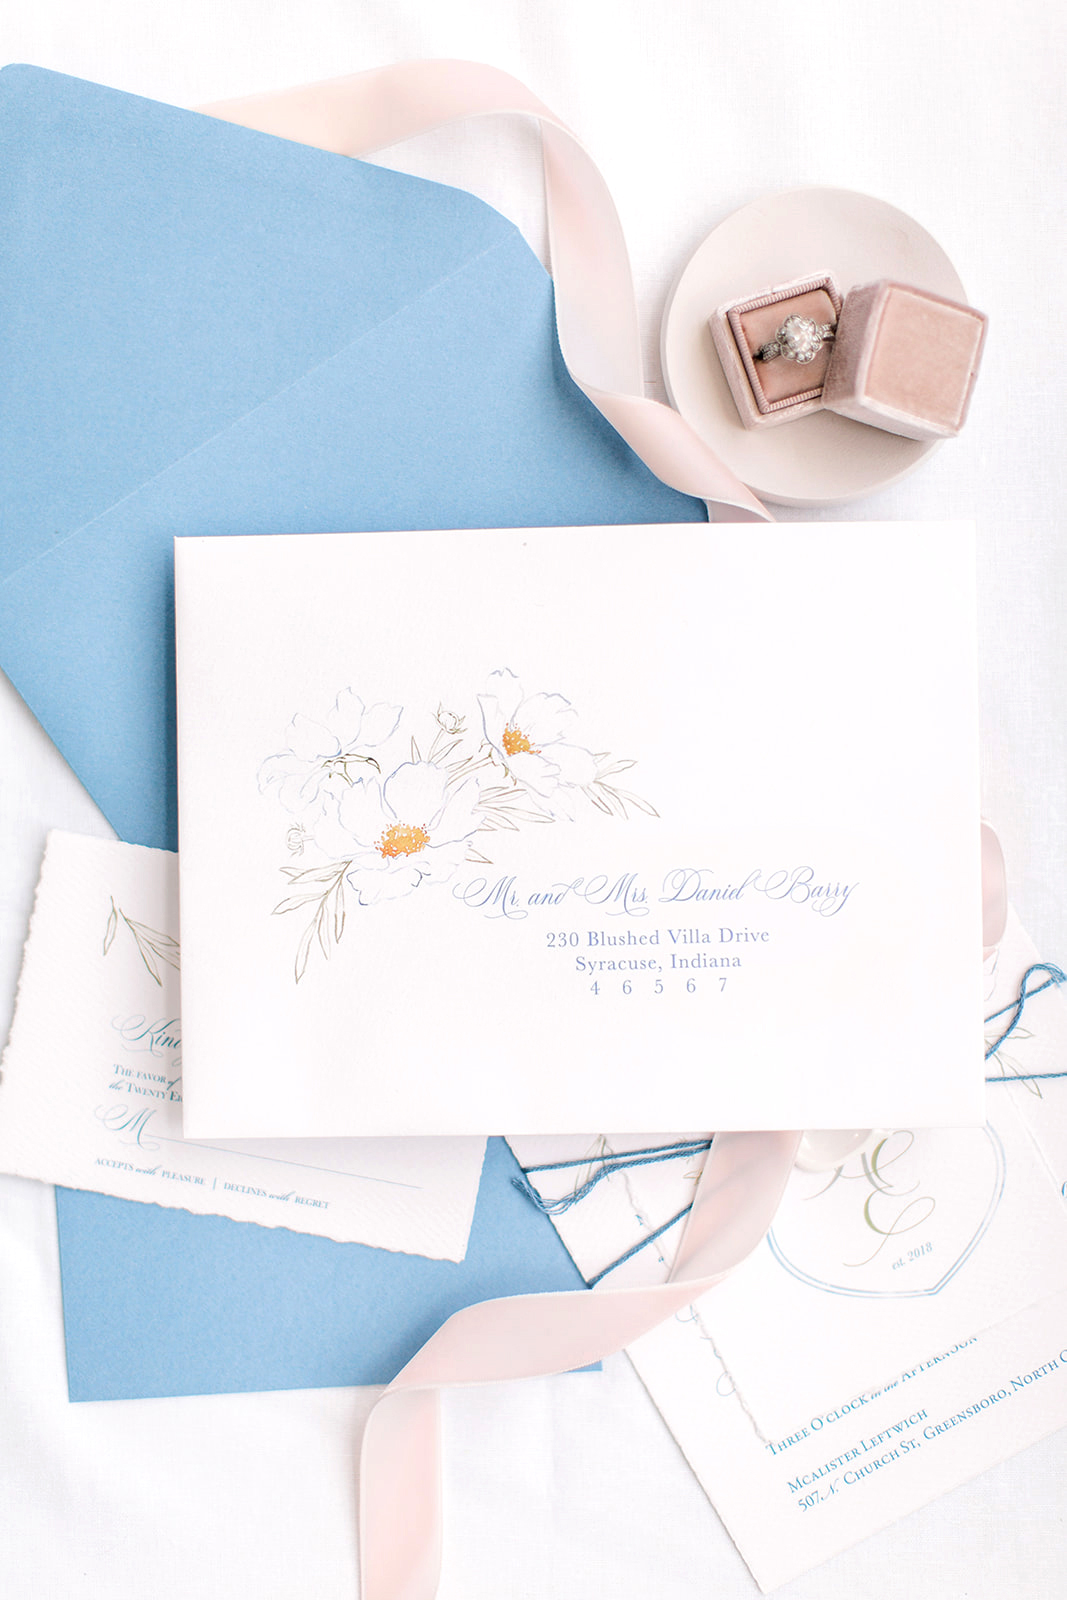 Beautiful calligraphy envelopes featuring watercolor artwork on the envelope for a fine art wedding.  Handmade paper envelopes and artwork by Katrina of Blushed Design, Wedding INvitaitons and Fine Art Portraits